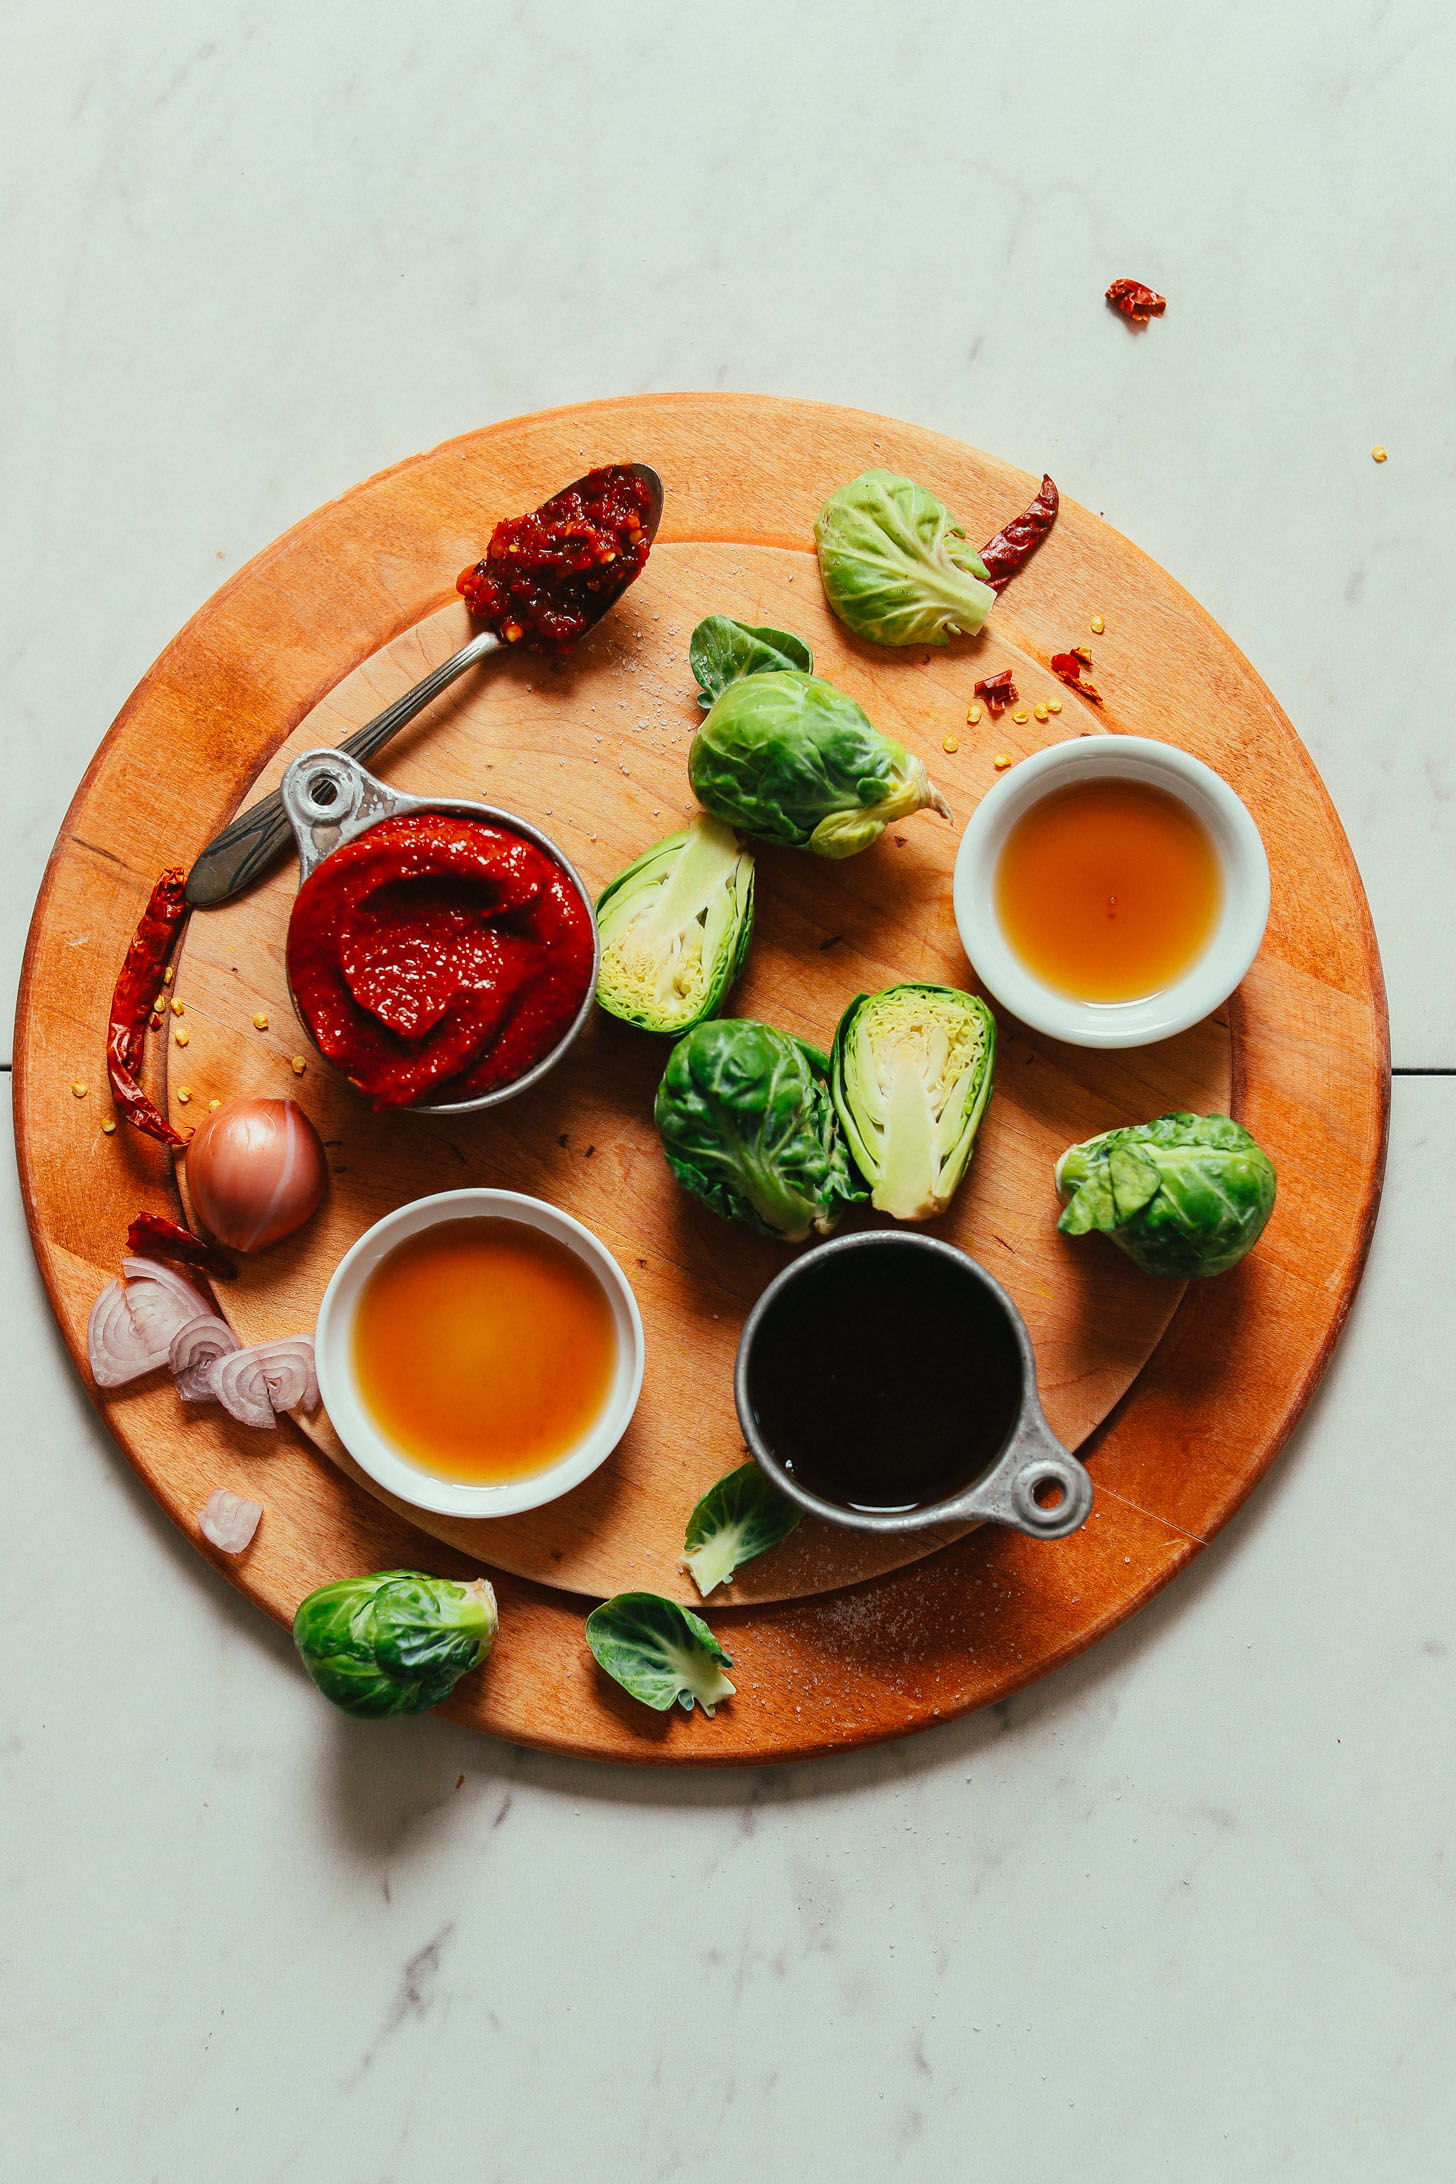 Cutting board with ingredients for making our vegan Gochujang Stir-Fried Brussels Sprouts